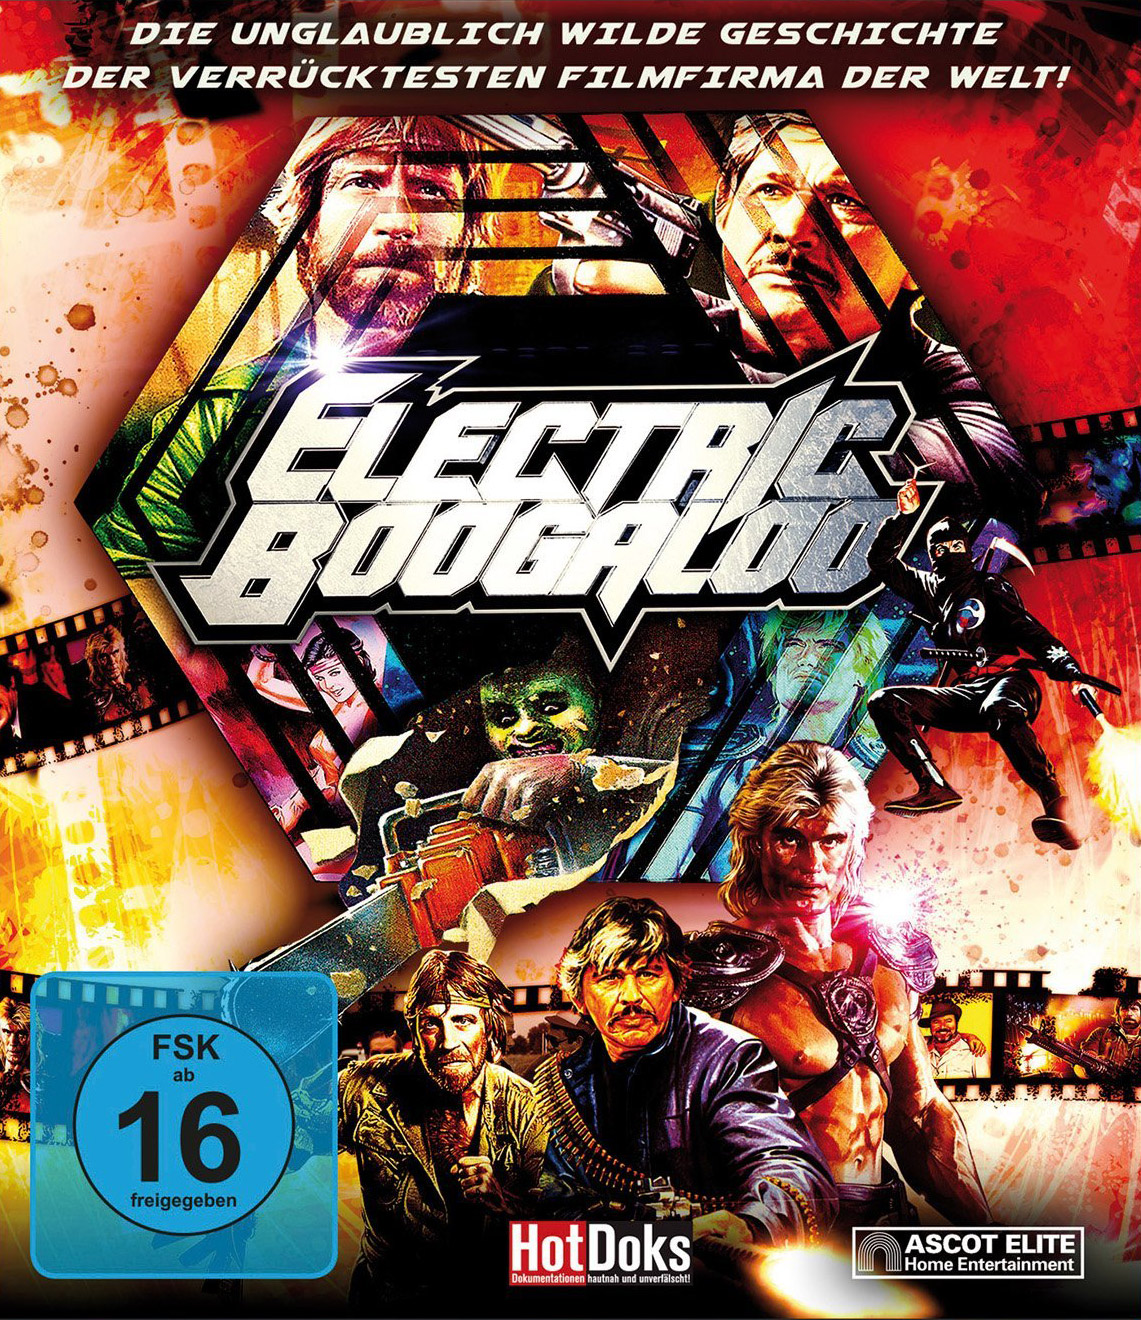 electric-boogaloo-forgotten-story-of-cannon-films-dvd-bluray-images-b